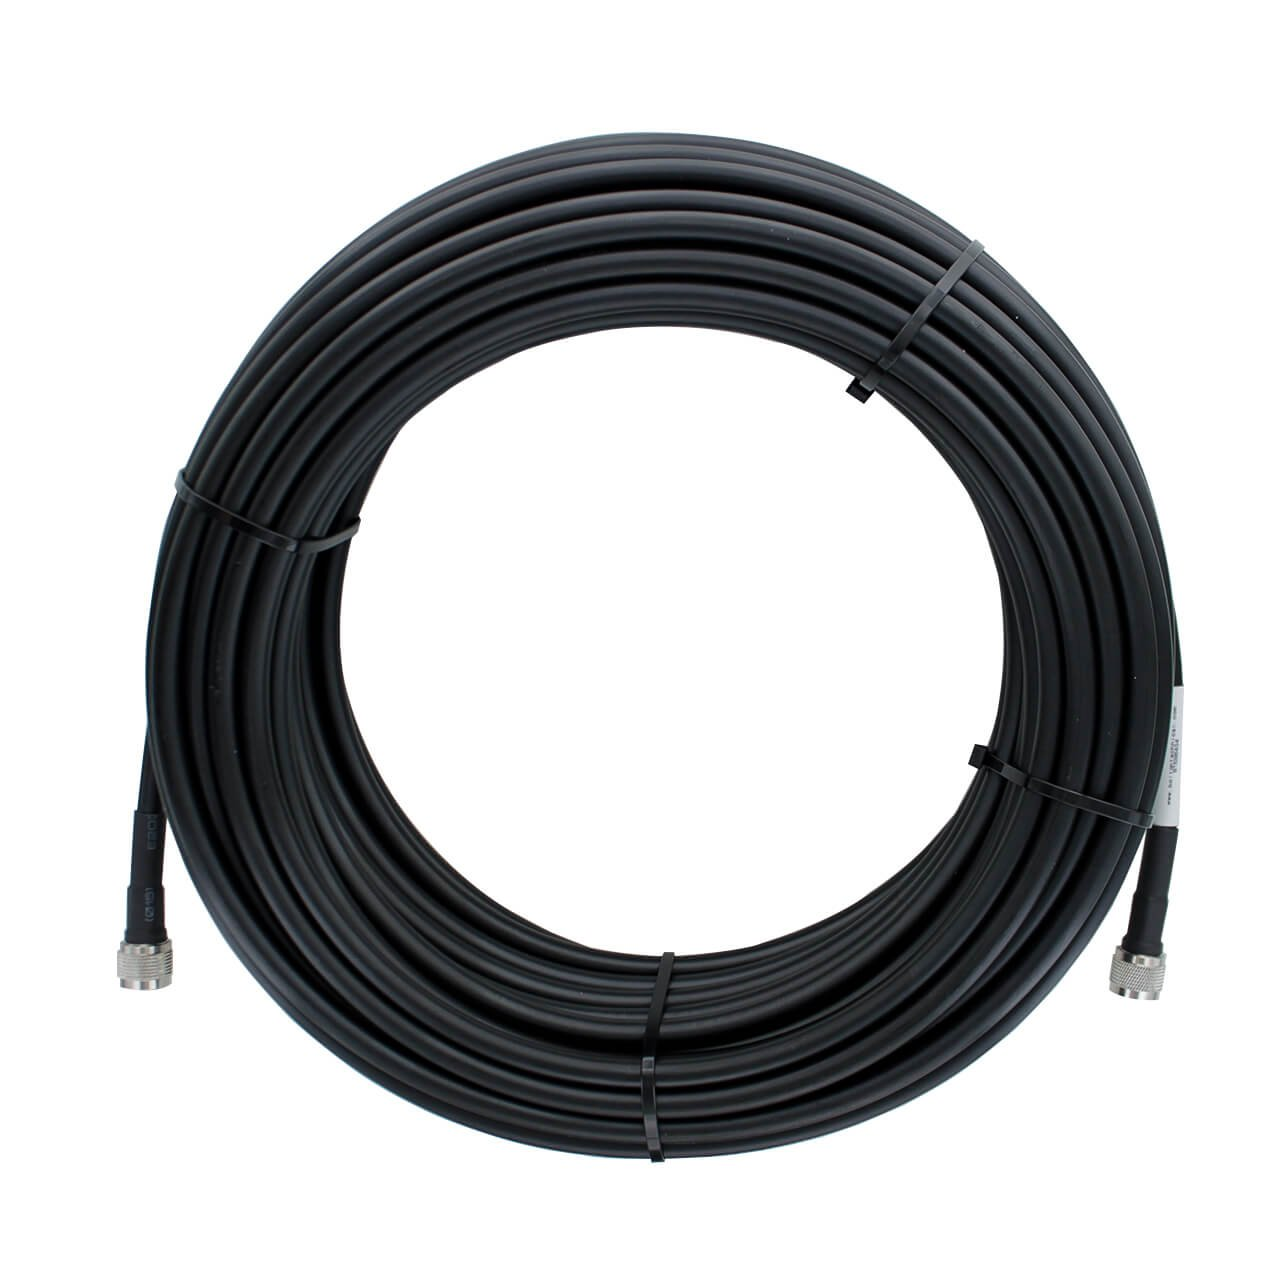 Bolton400 100ft 50-ohm N-Male to N-Male Black Coax Cable - Low Loss Coaxial LMR400 Spec